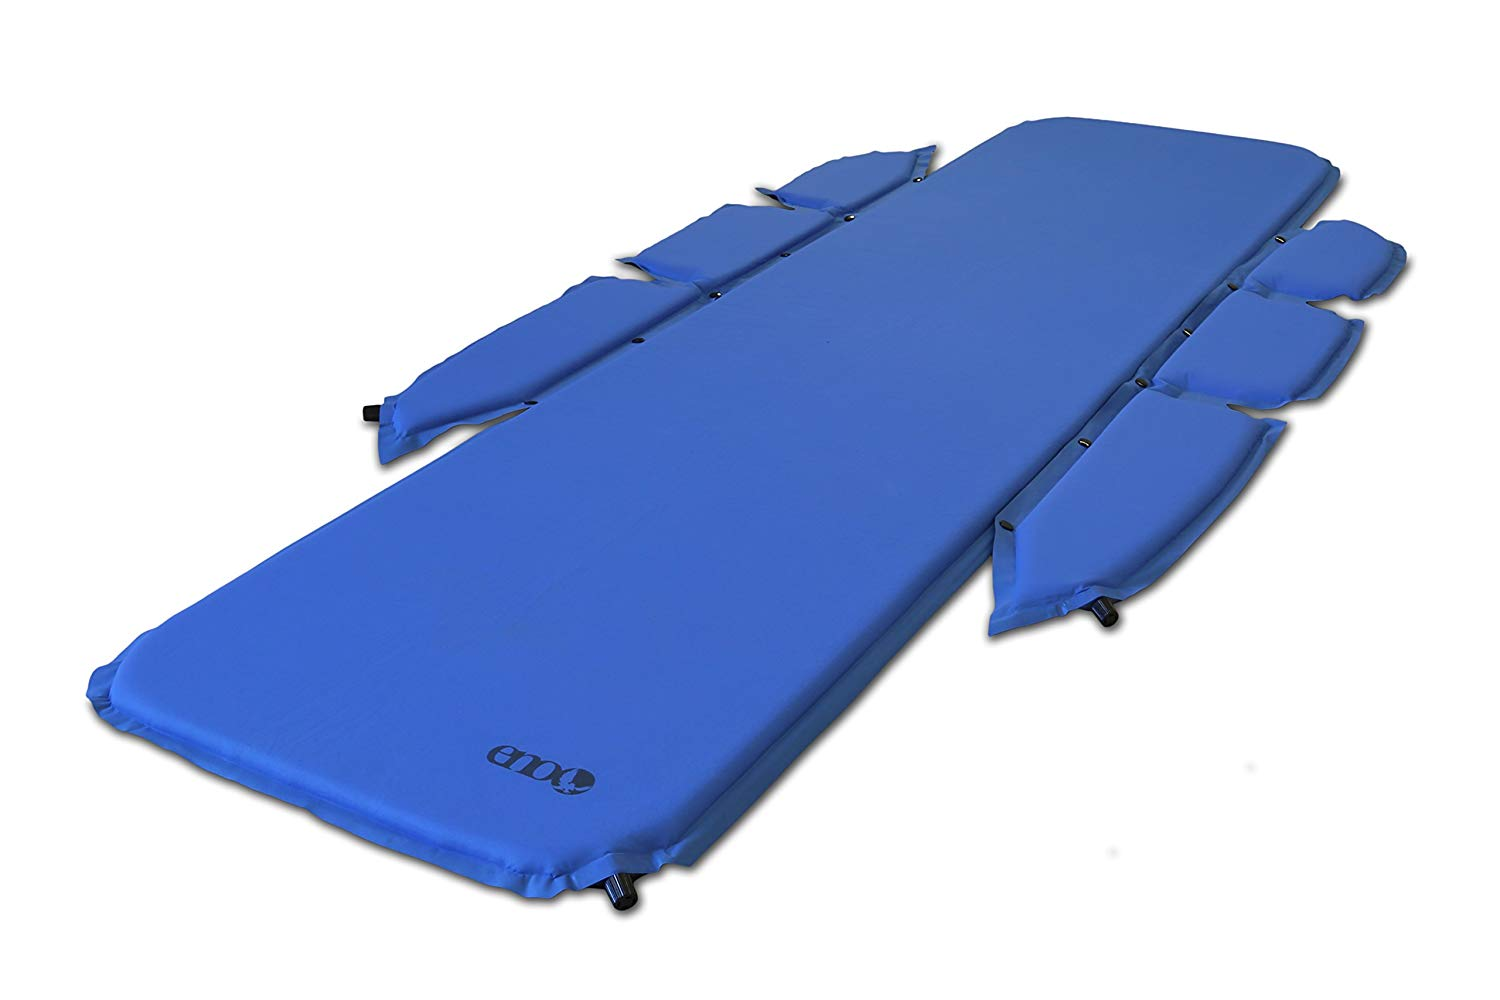 ENO Eagles Nest Outfitters - AirLoft Hammock Mattress